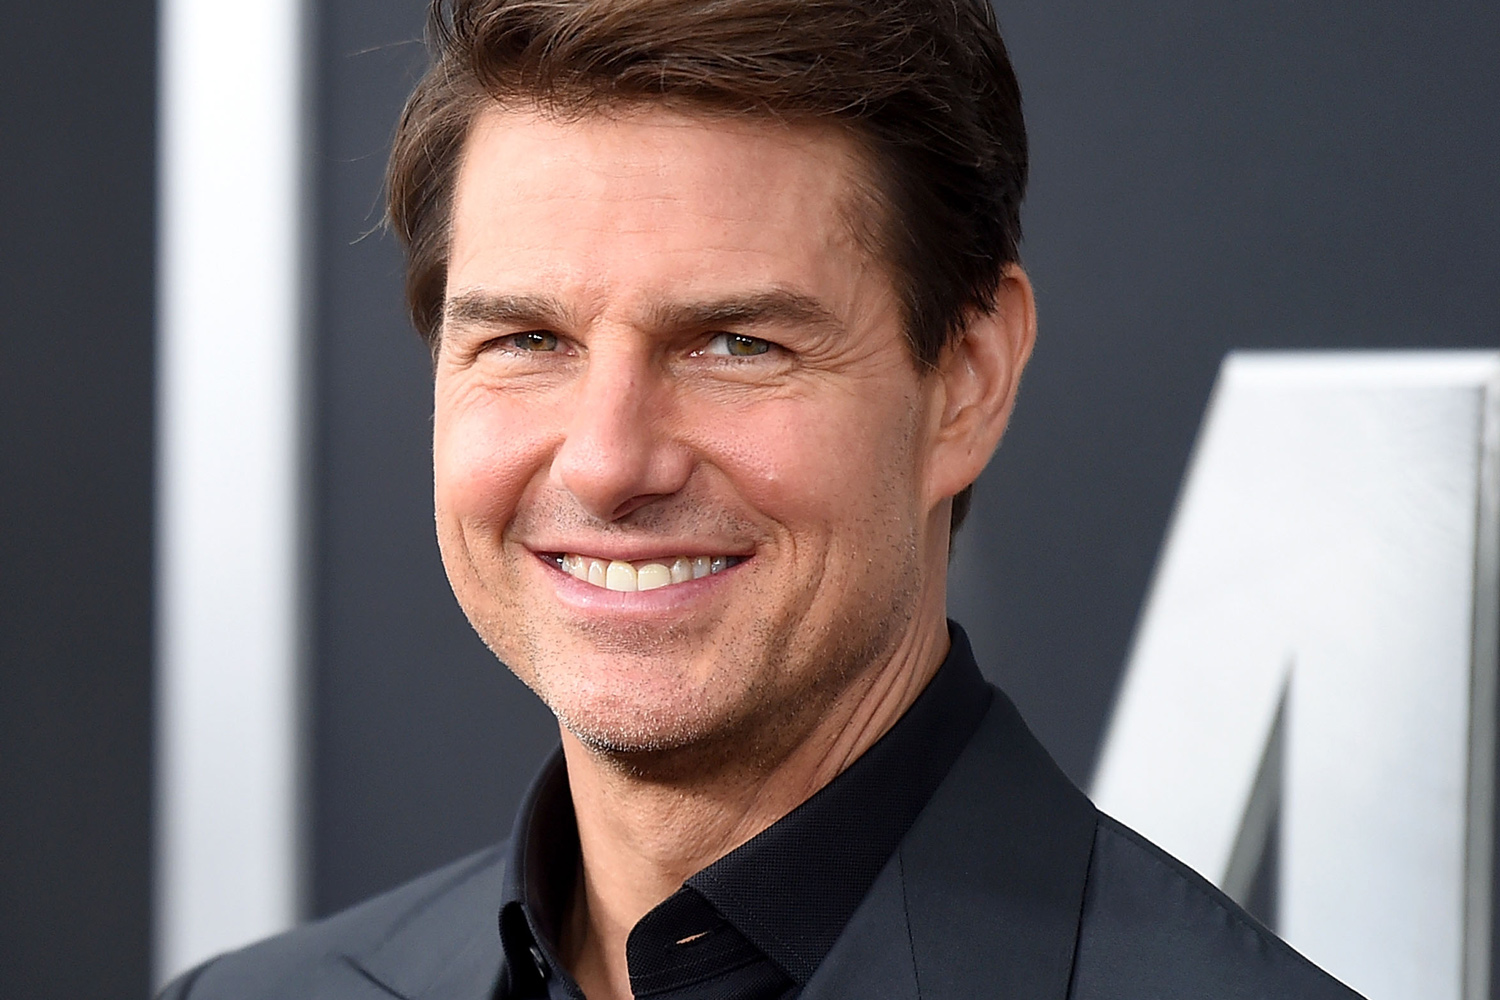 Tom Cruise Wants To Freeze His Body So He Can Live Forever